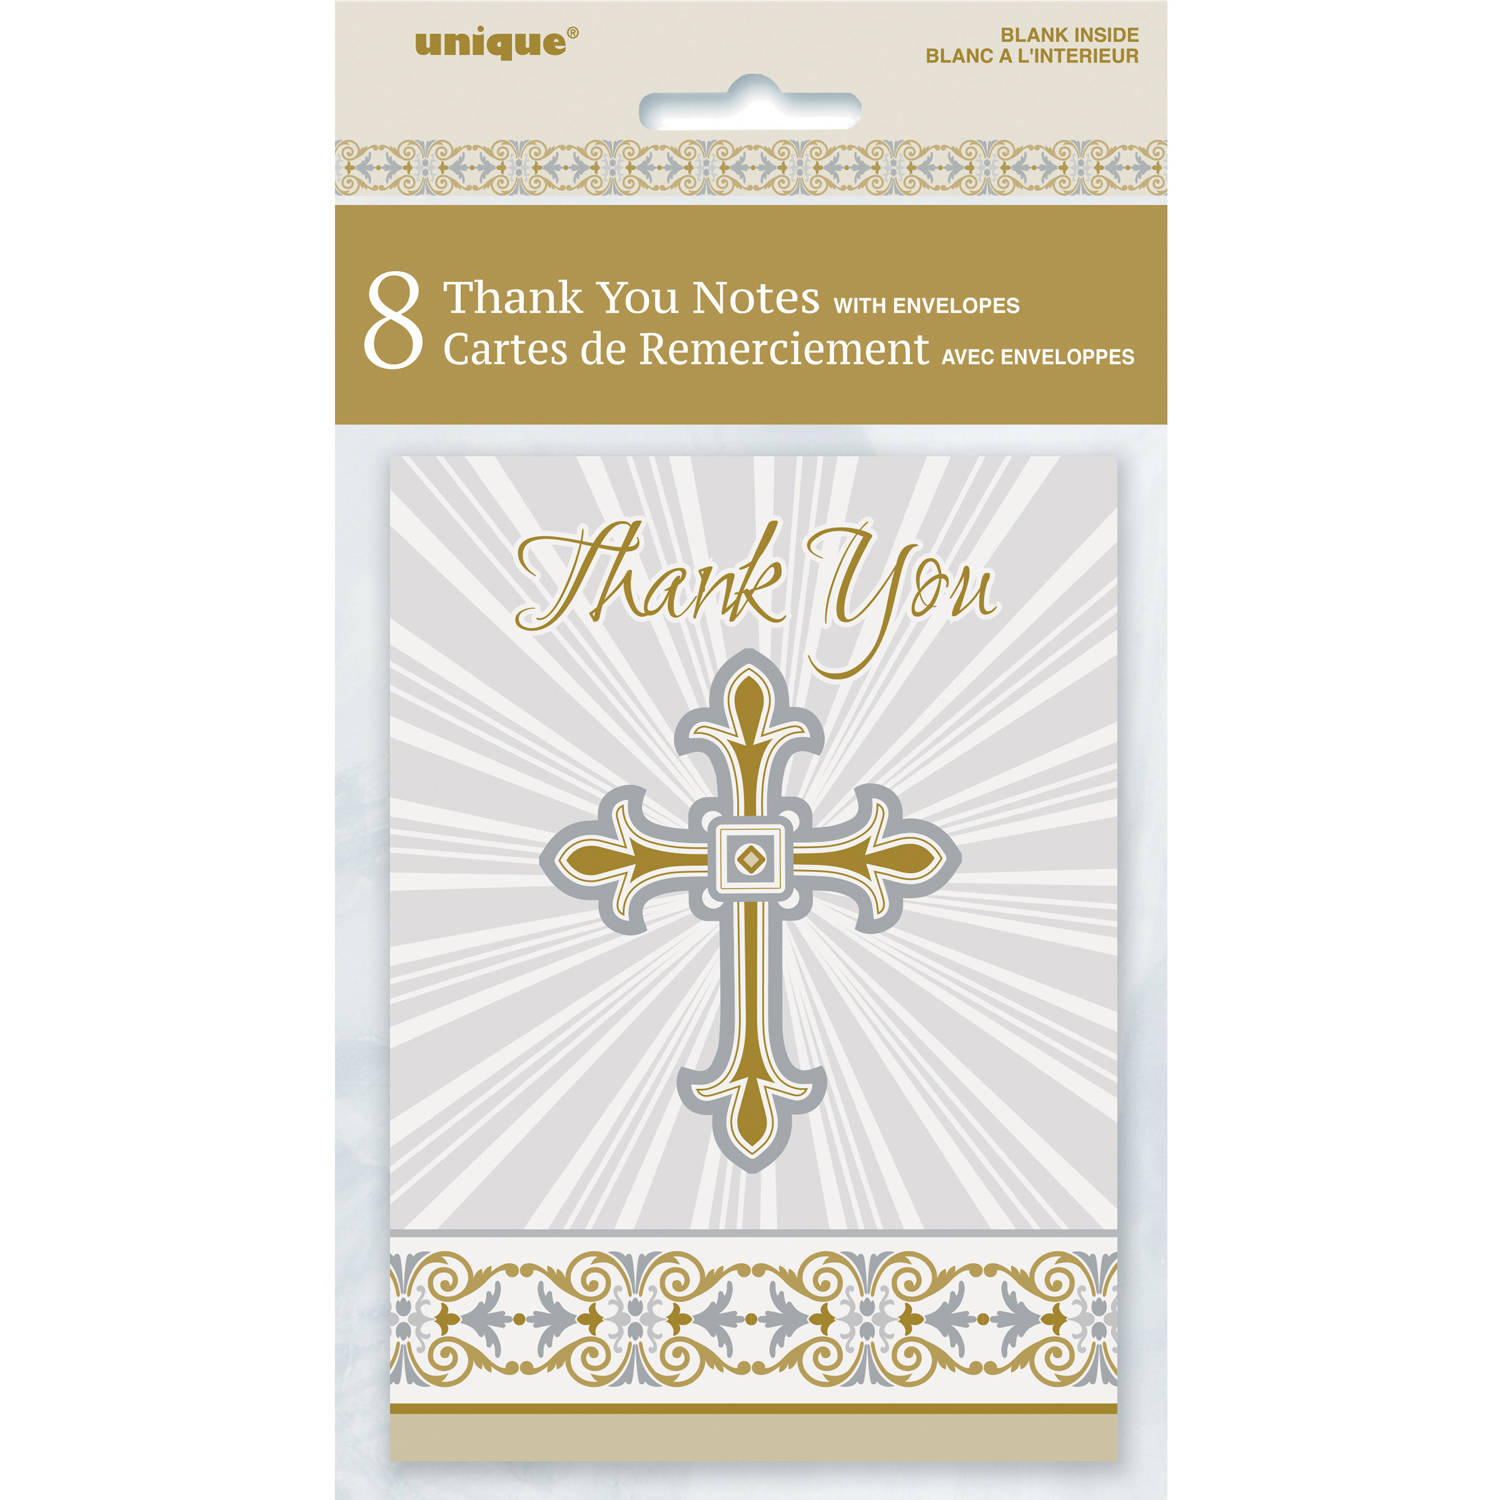 Radiant Cross Religious Thank You Cards, 5.5 x 4 in, Gold & Silver, 8ct